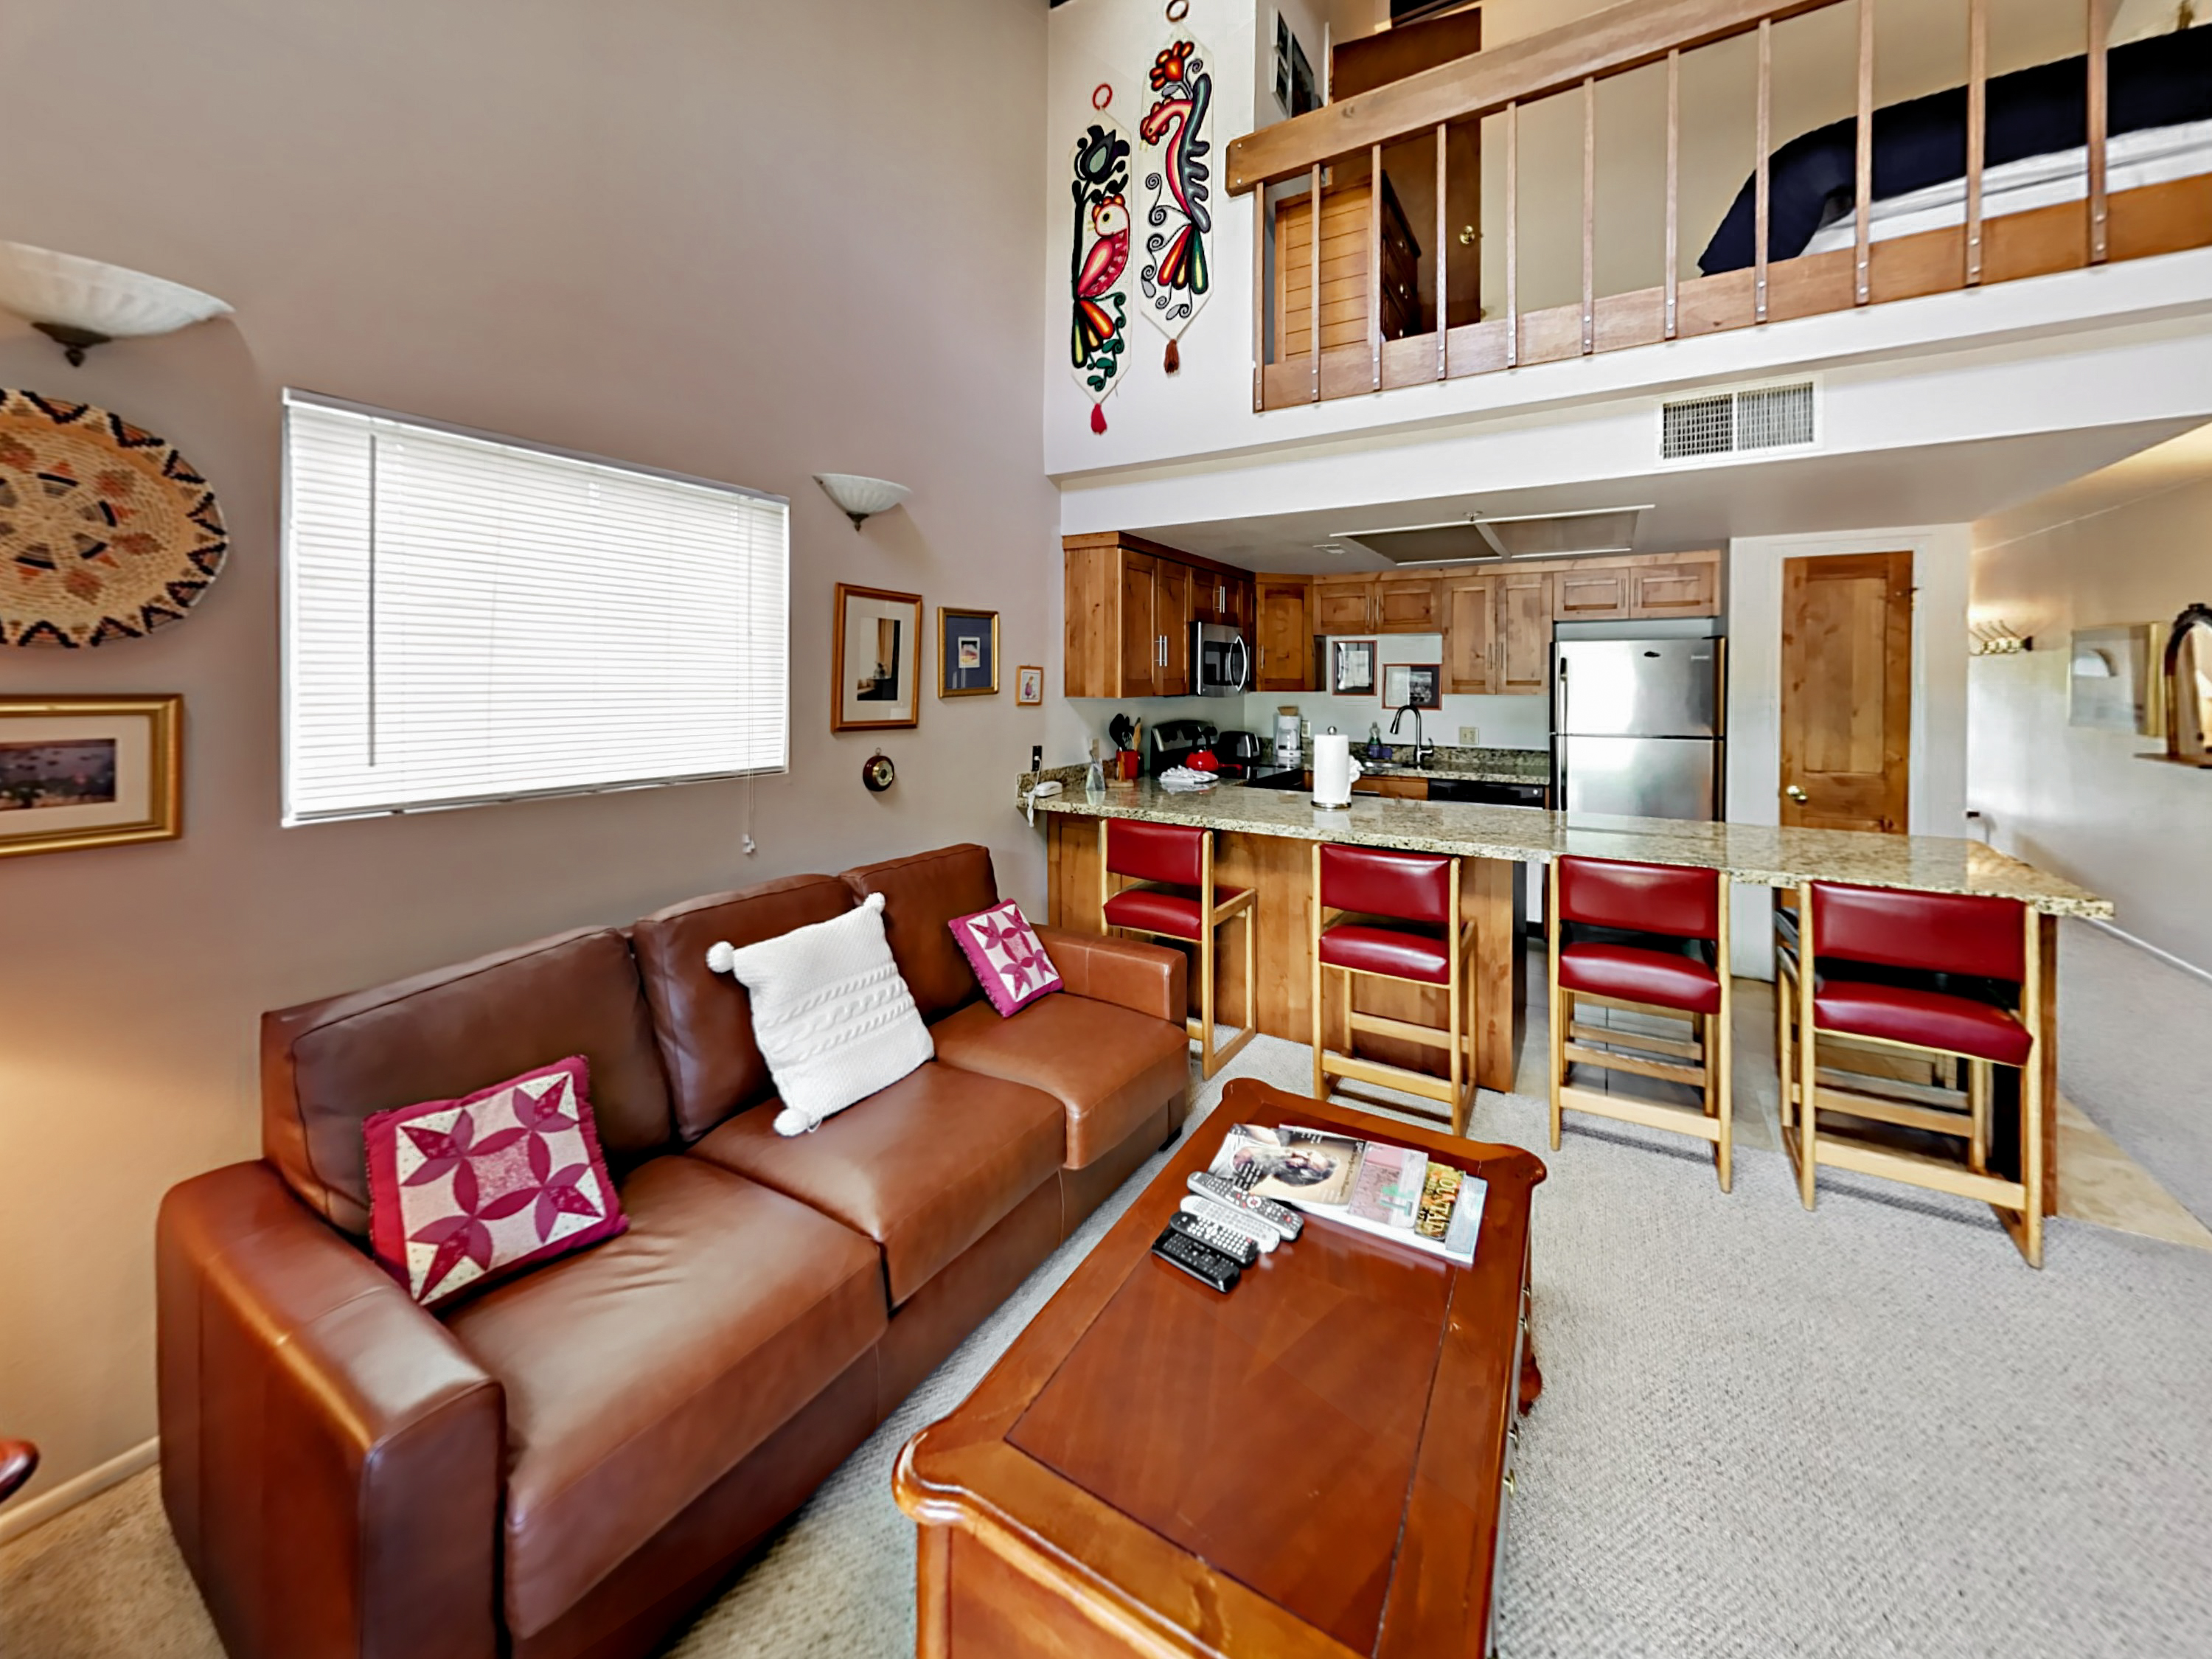 Park City UT Vacation Rental Vaulted ceilings on